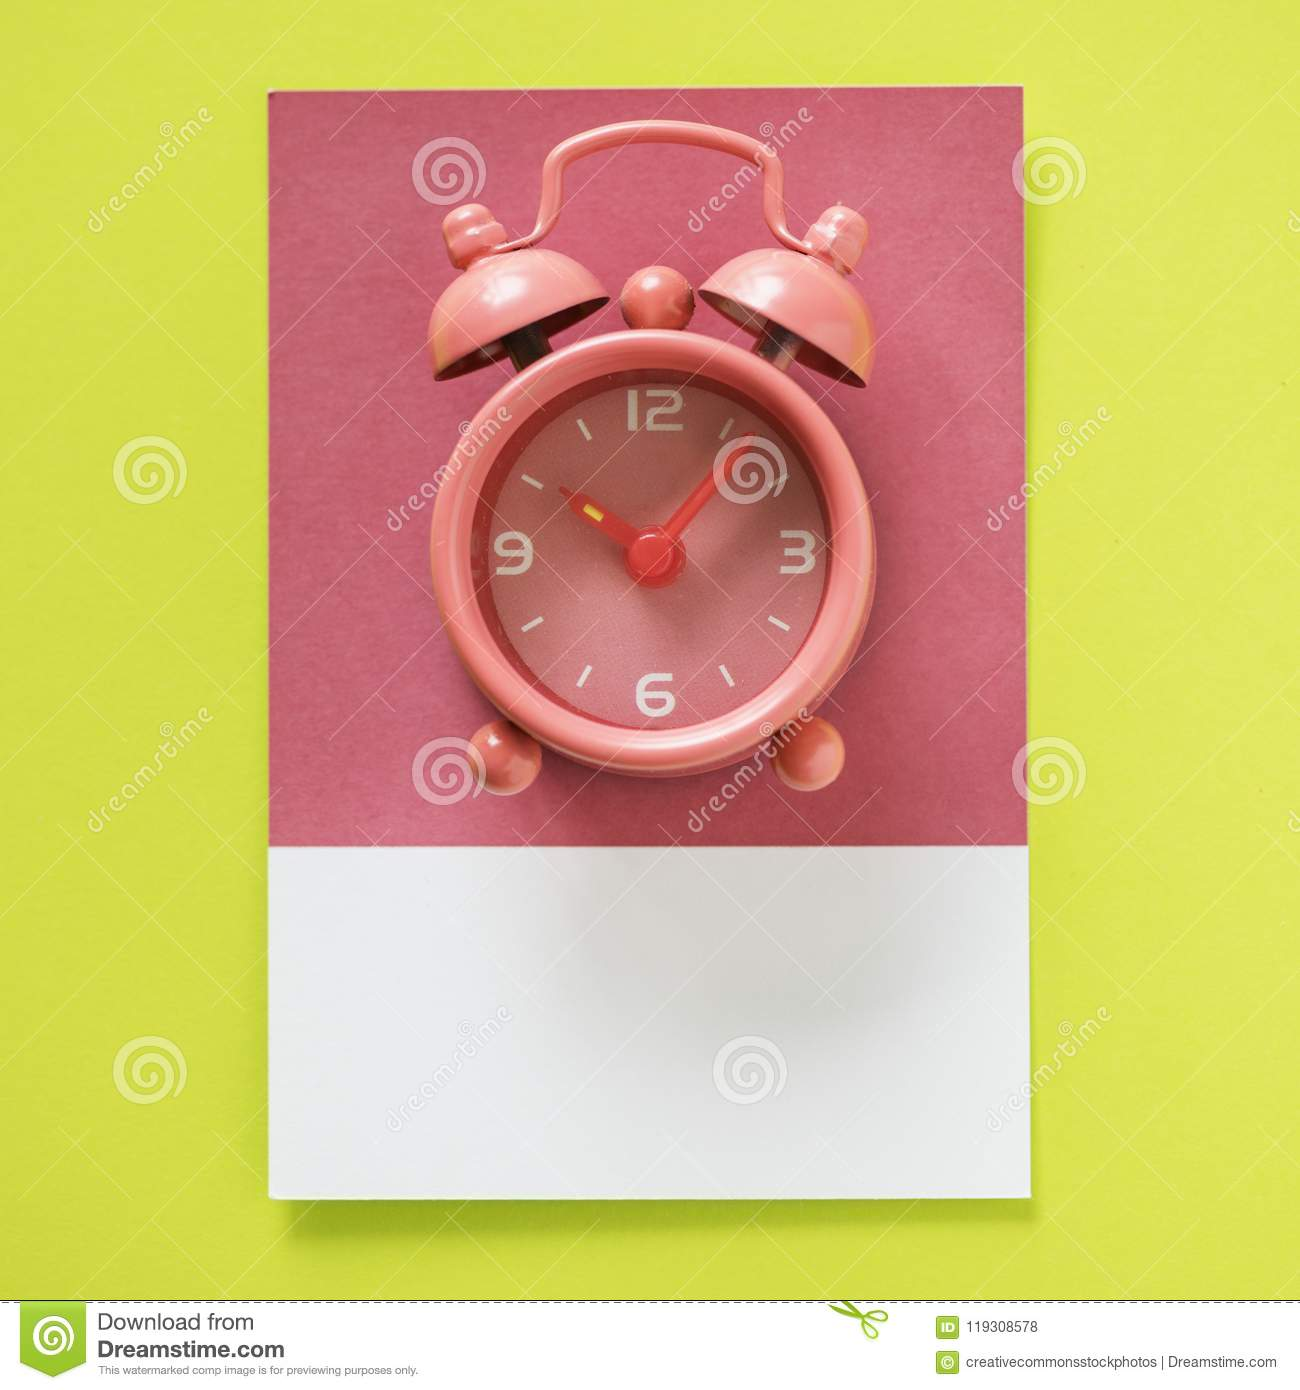 Pink Twin Bell Alarm Clock At 10:06 Picture  Image: 119308578